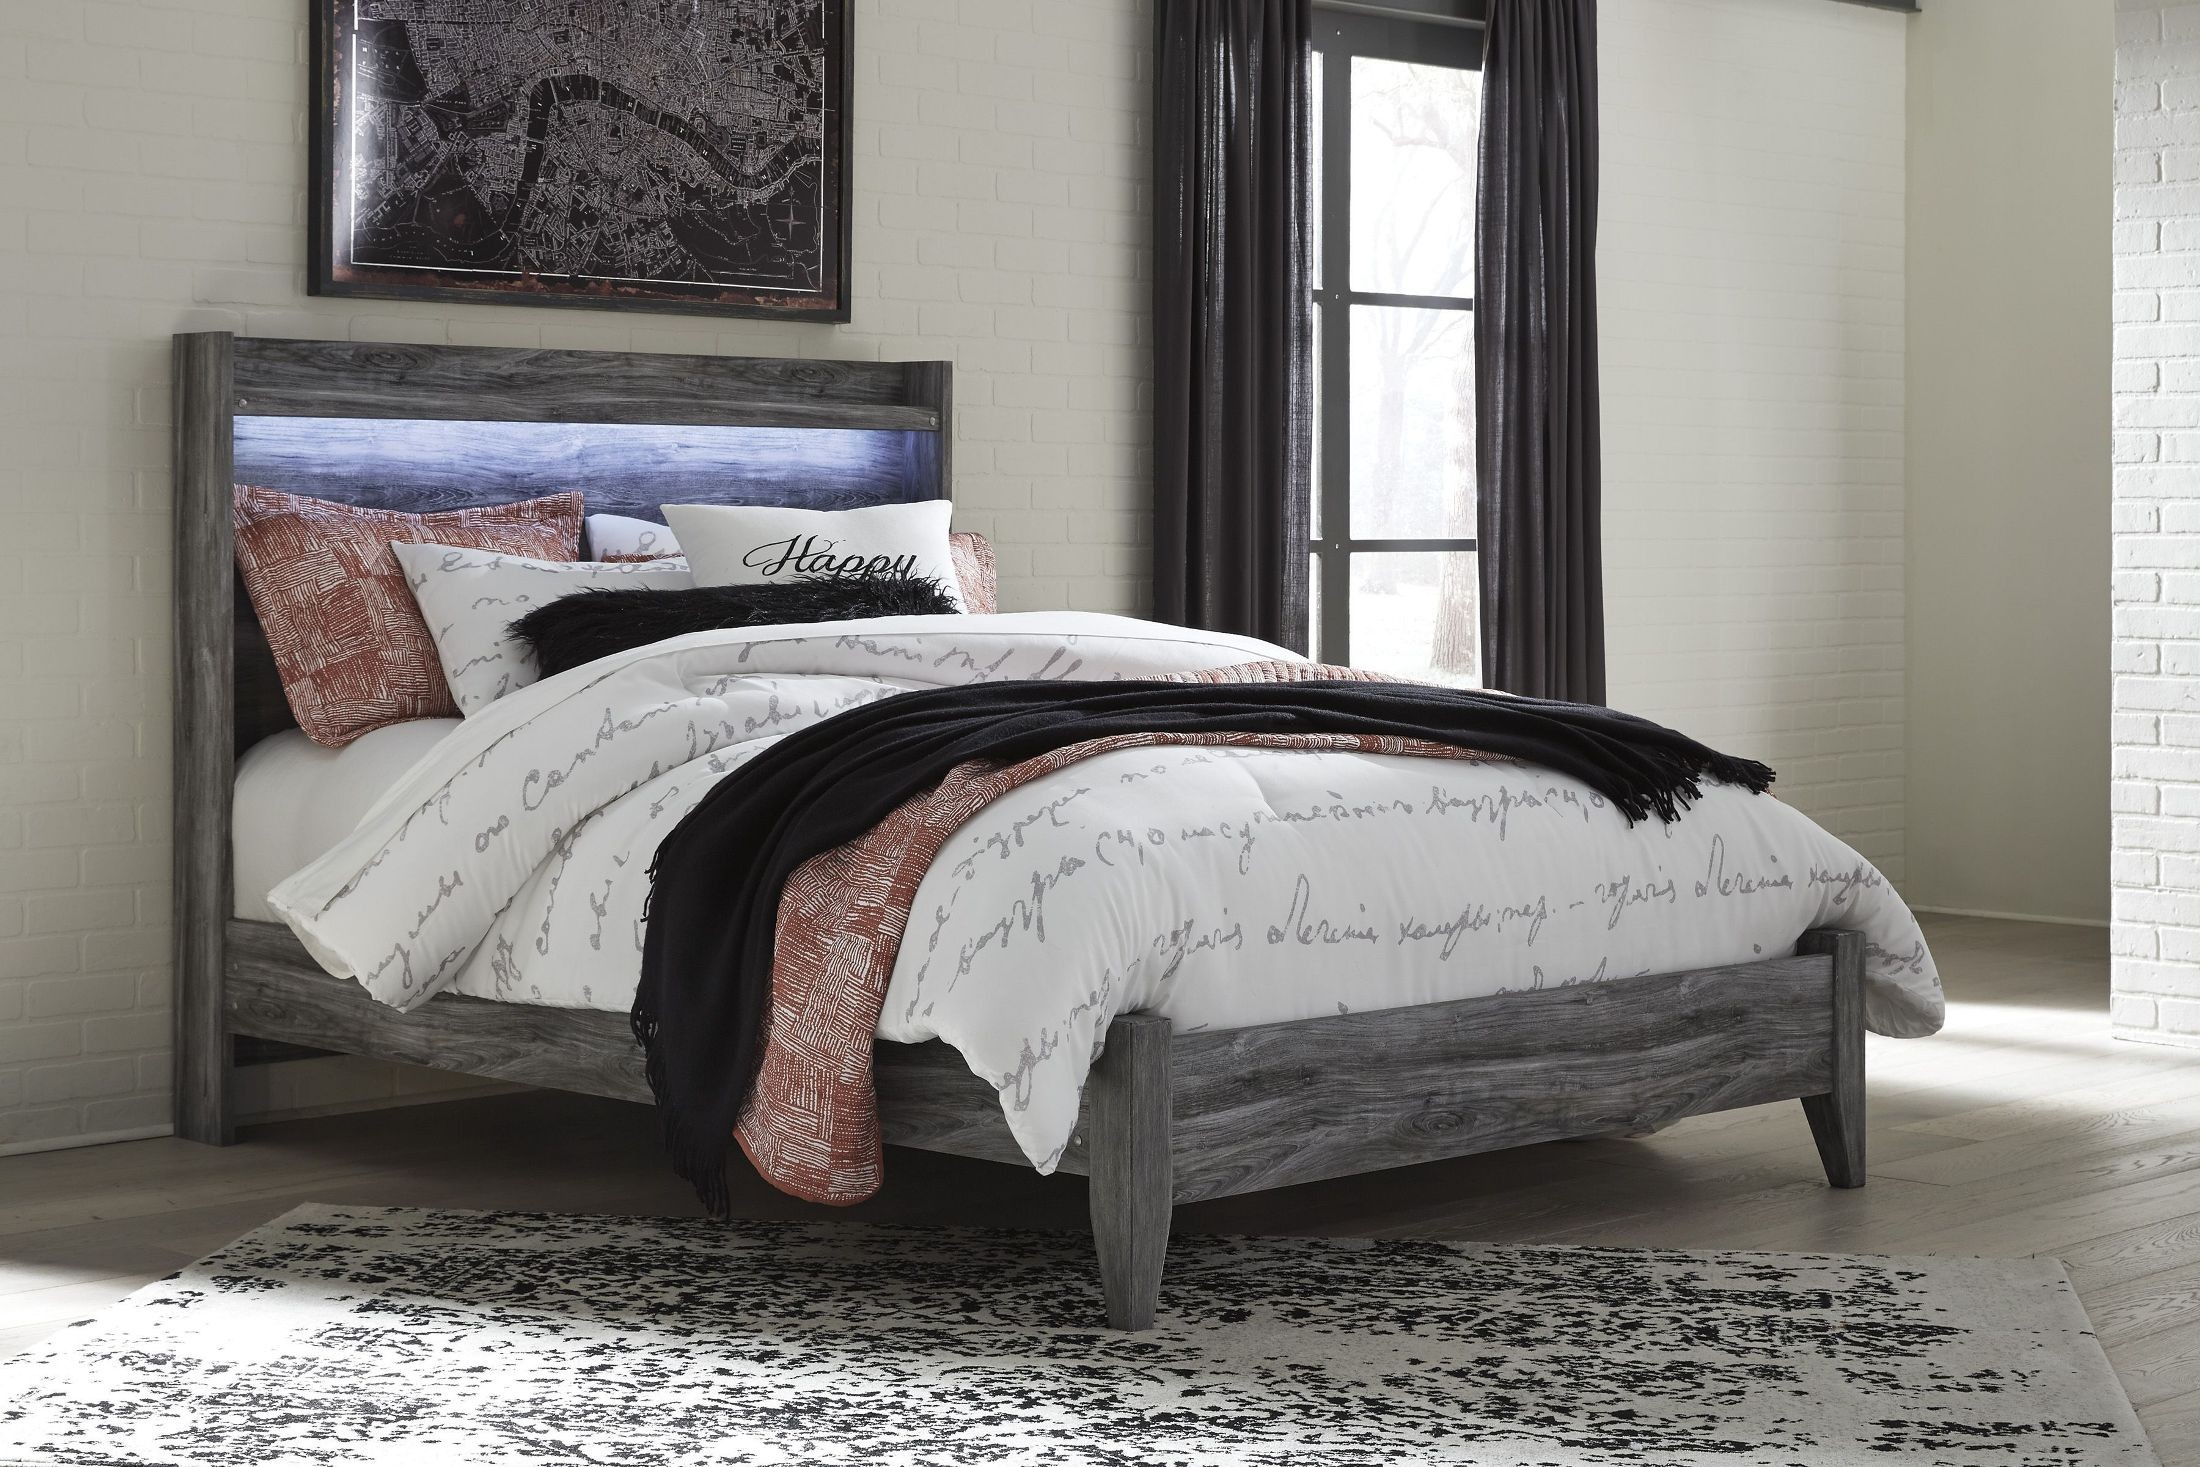 Queen Size Bed Images